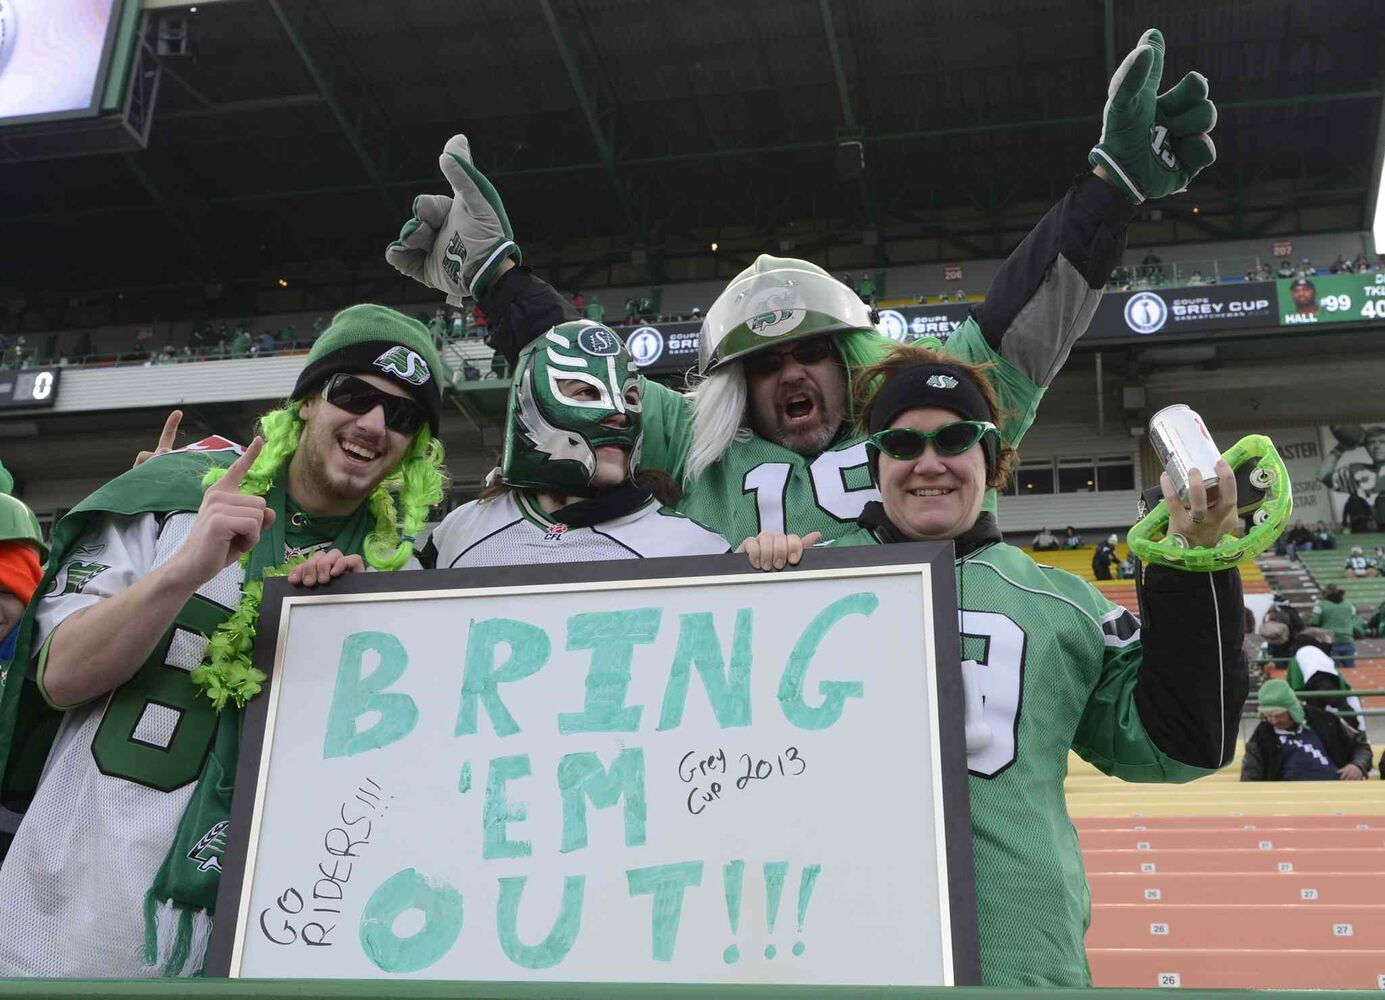 Saskatchewan Roughriders fans ham it up at the Grey Cup Saturday November 24, 2013 in Regina. (Ryan Remiorz / The Canadian Press)